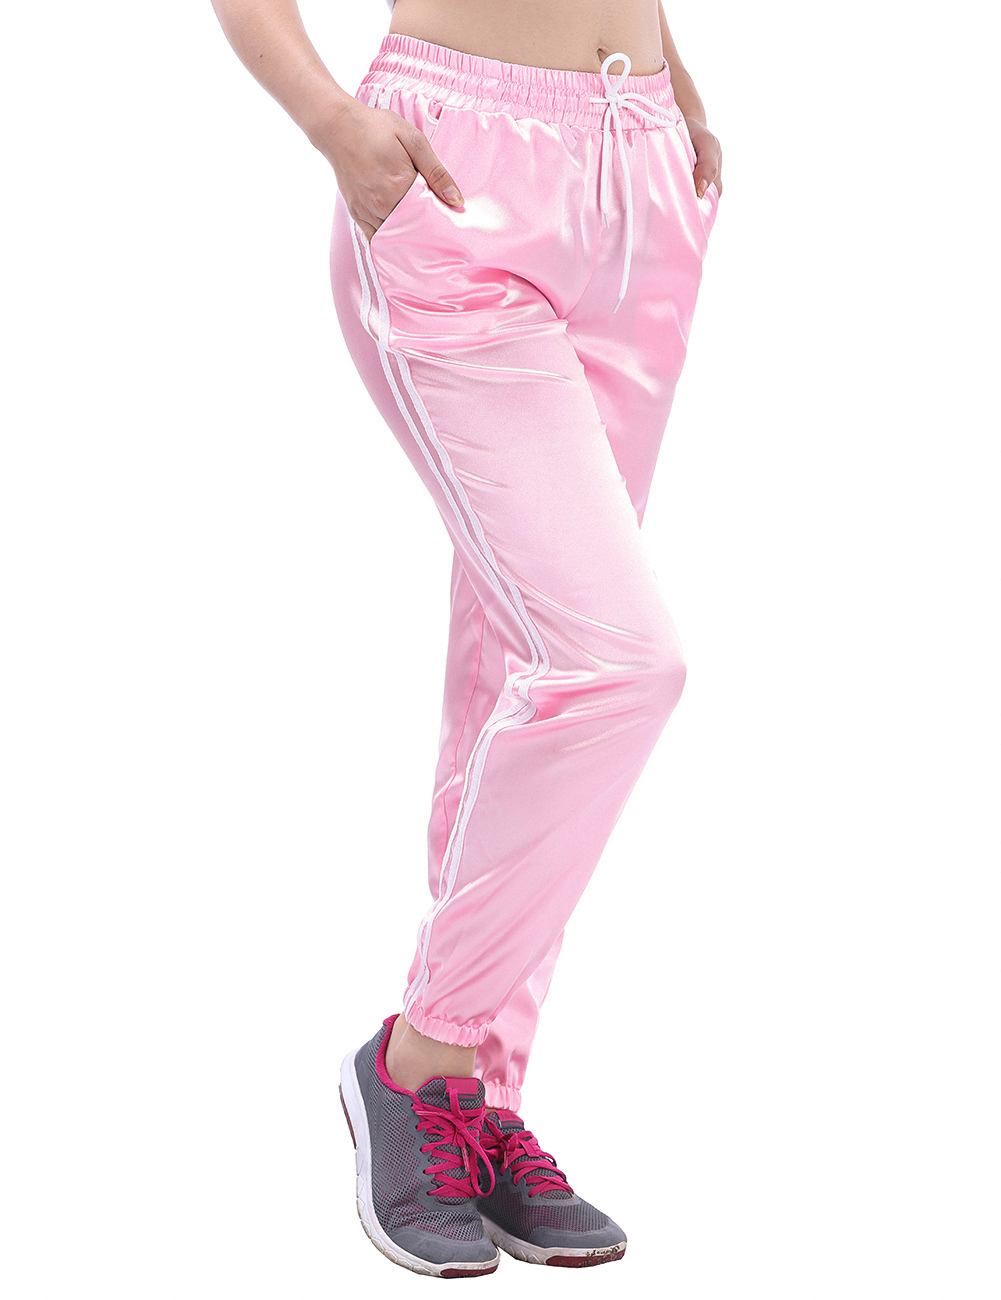 Women Fitness sports Pants Sports Pants Drawstring Running Trousers For Female Bodybuilding Trouser